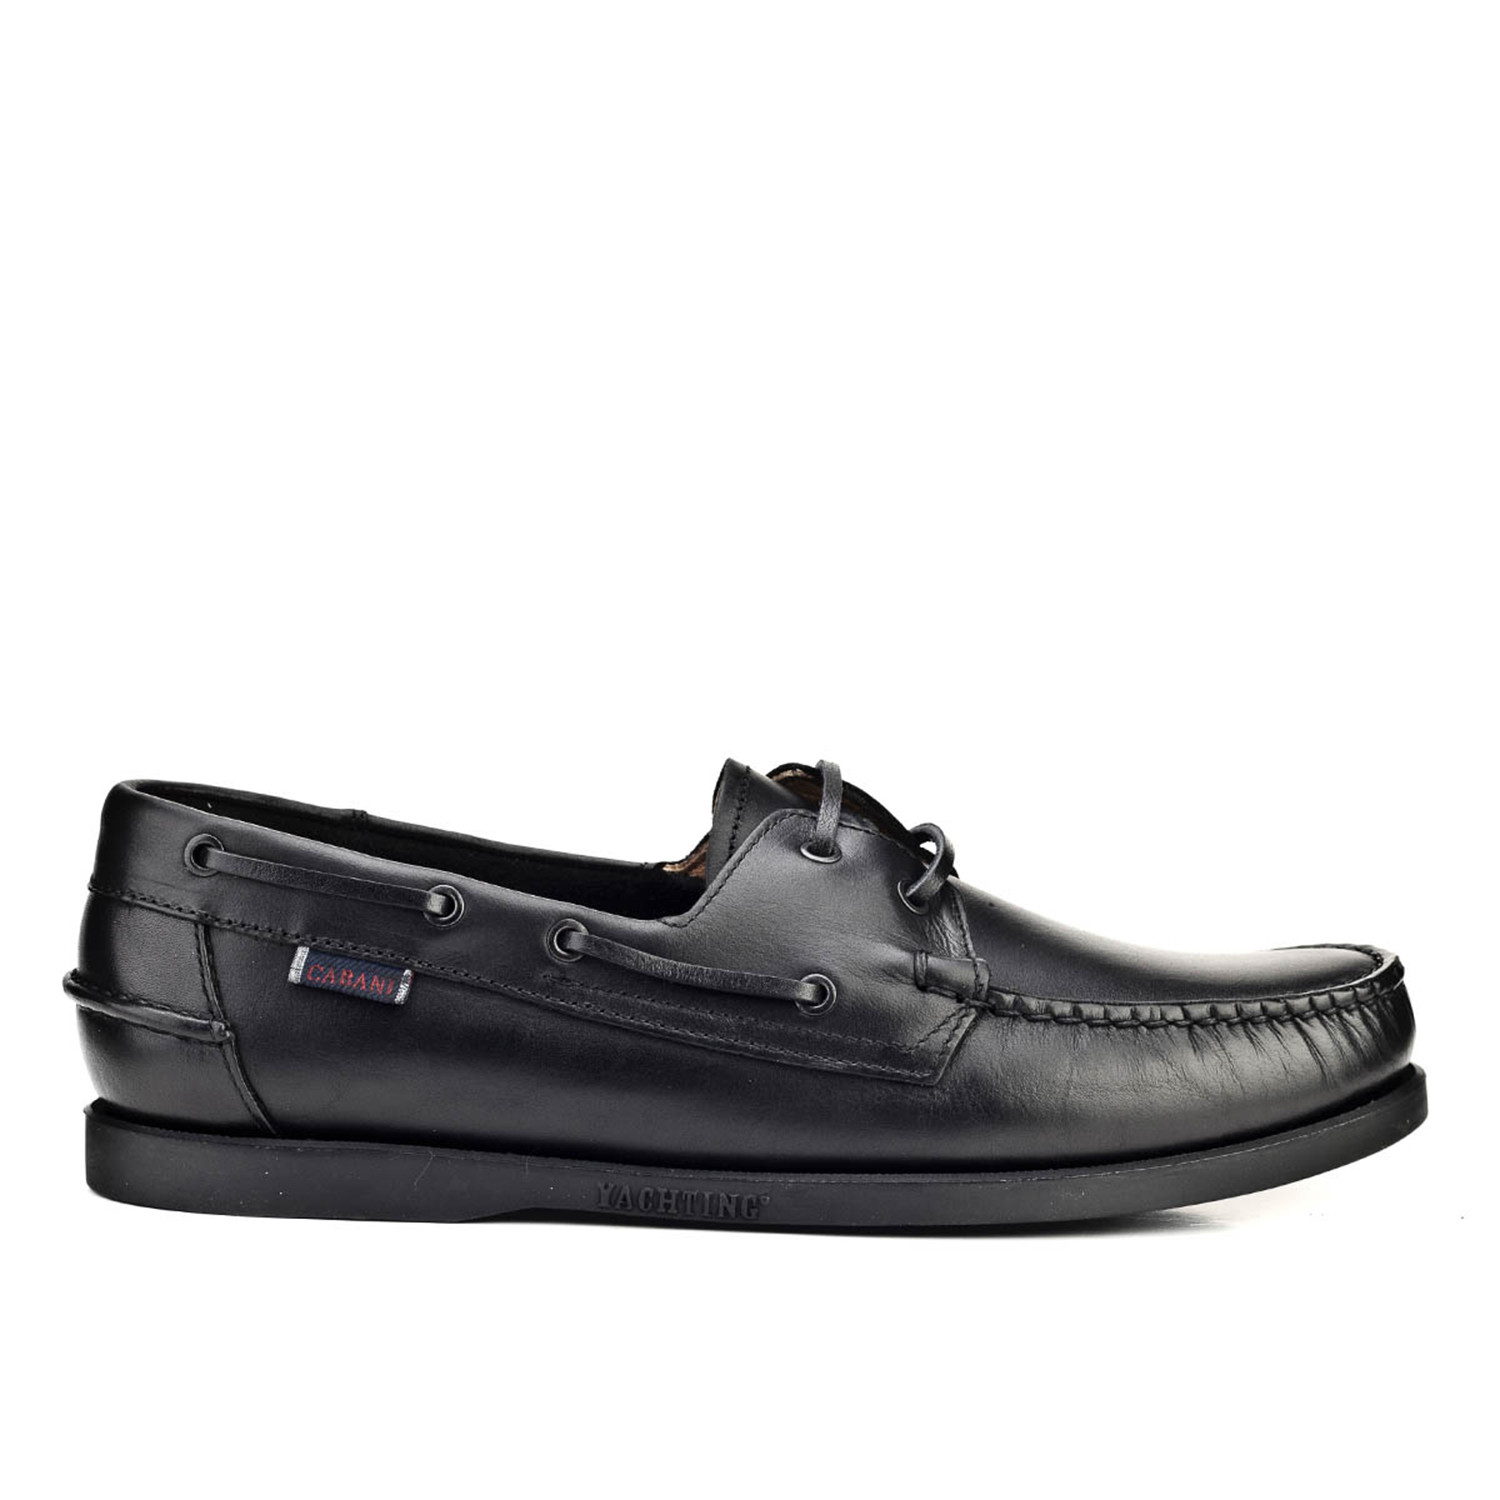 2e3f1fd1f19 Filmore Loafer Shoes    Black (Euro  39) - Cabani - Touch of Modern